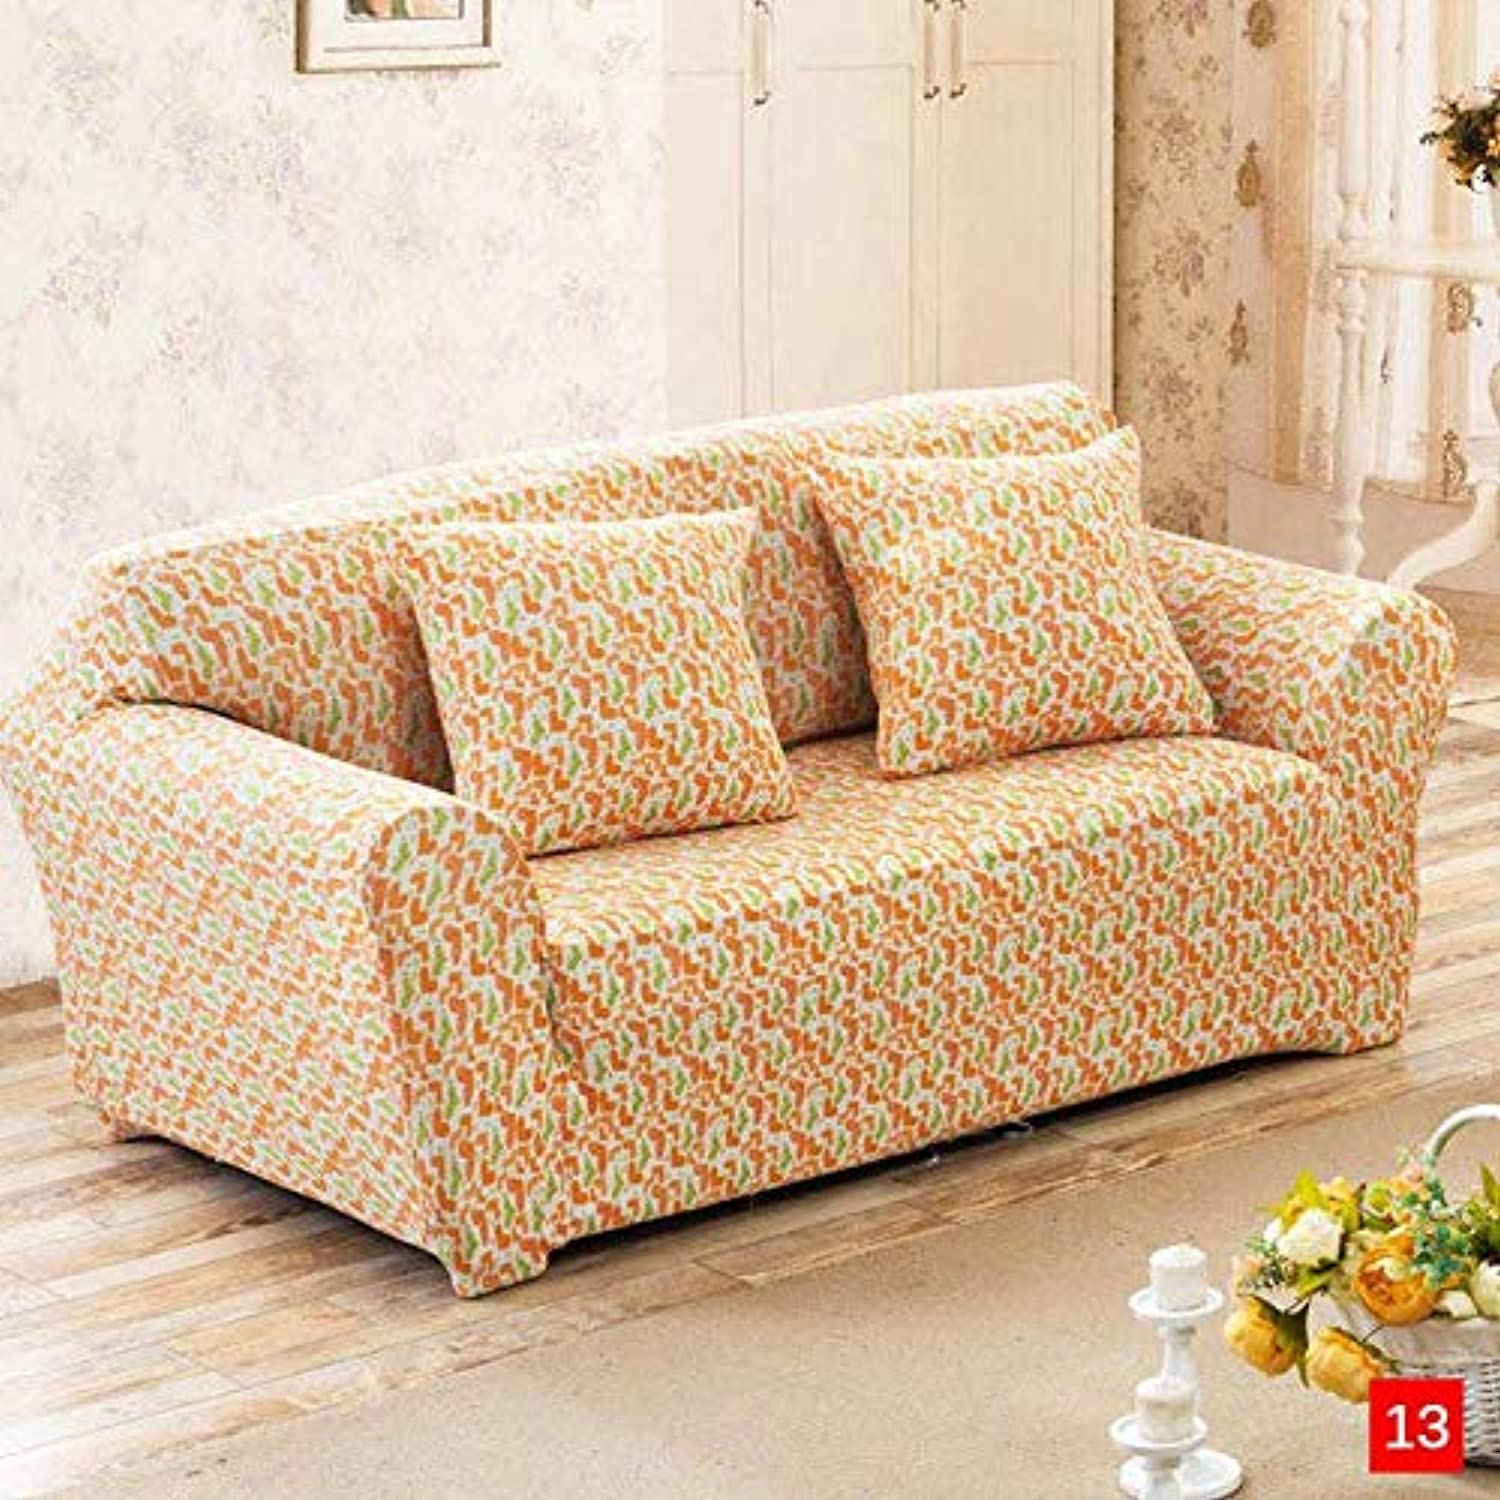 Spandex Stretch Sofa Cover Sectional Sofa Couch Cover Slipcovers for Living Room housse canape slipcover 1 2 3 4 Seater   color 26, Single seat